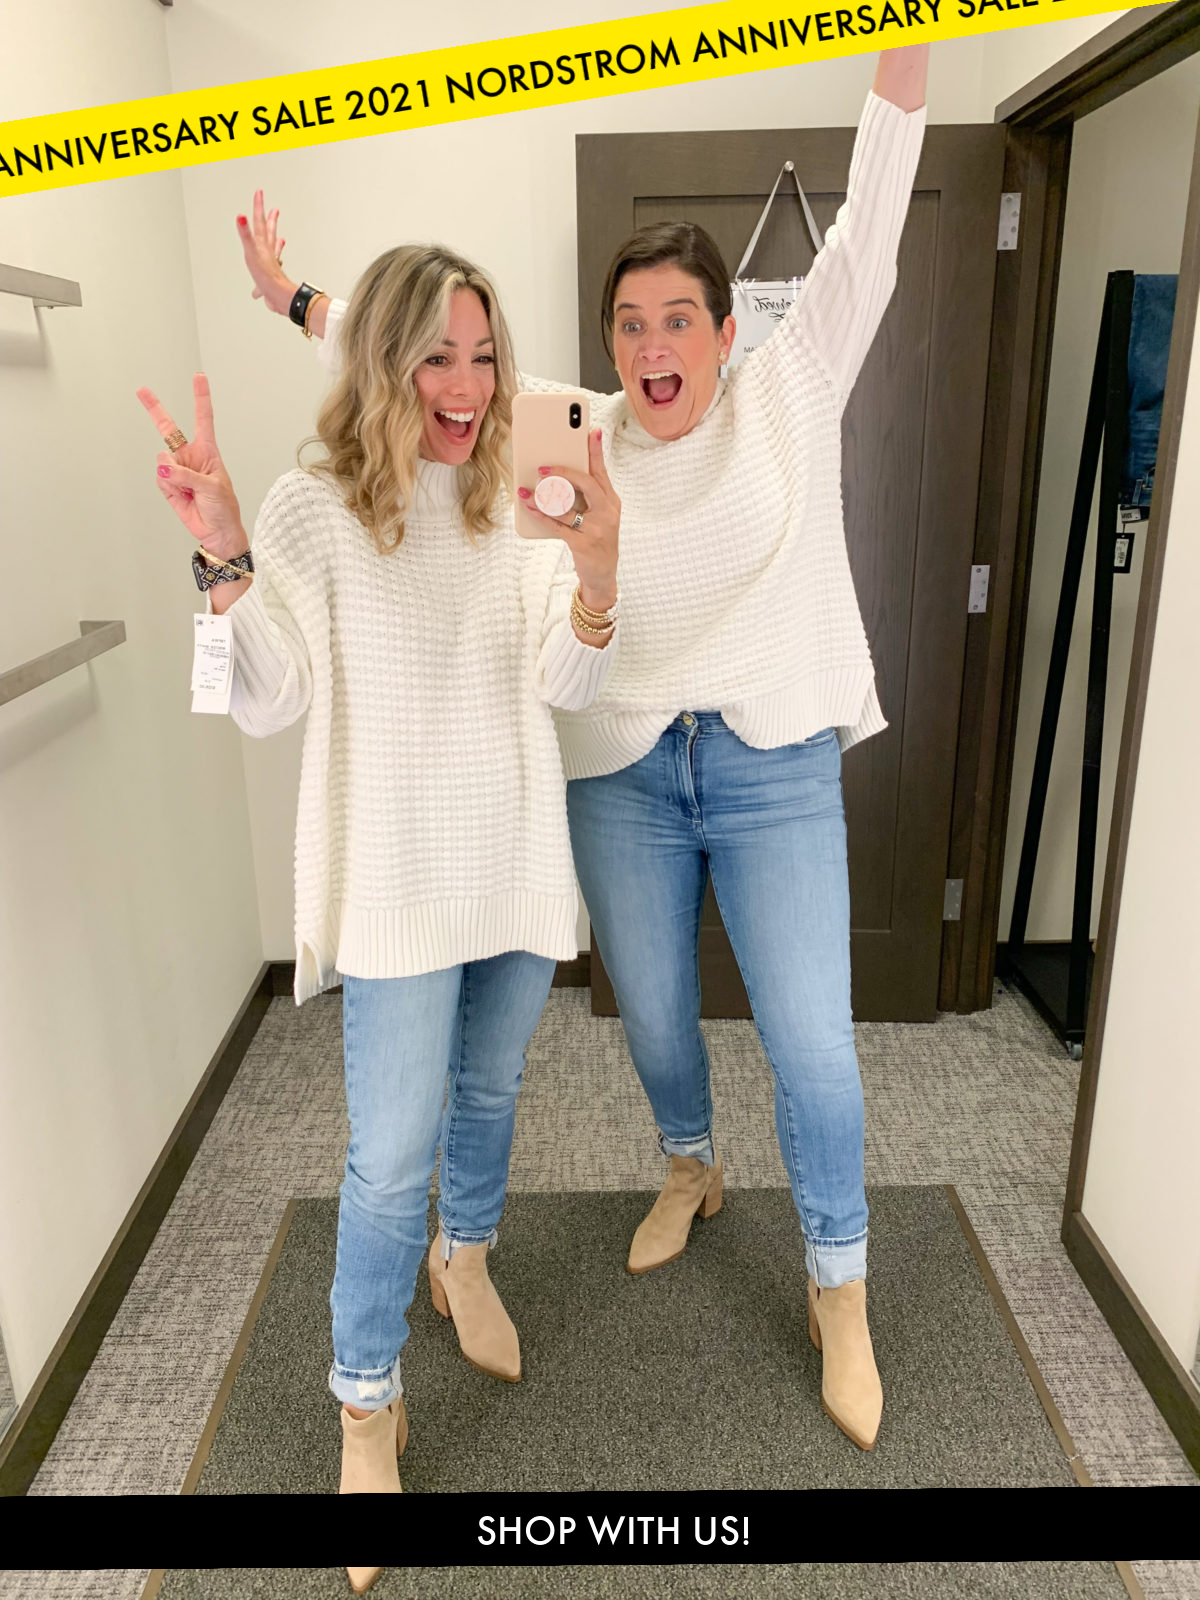 Nordstrom Anniversary Sale 2021 Shop with Us